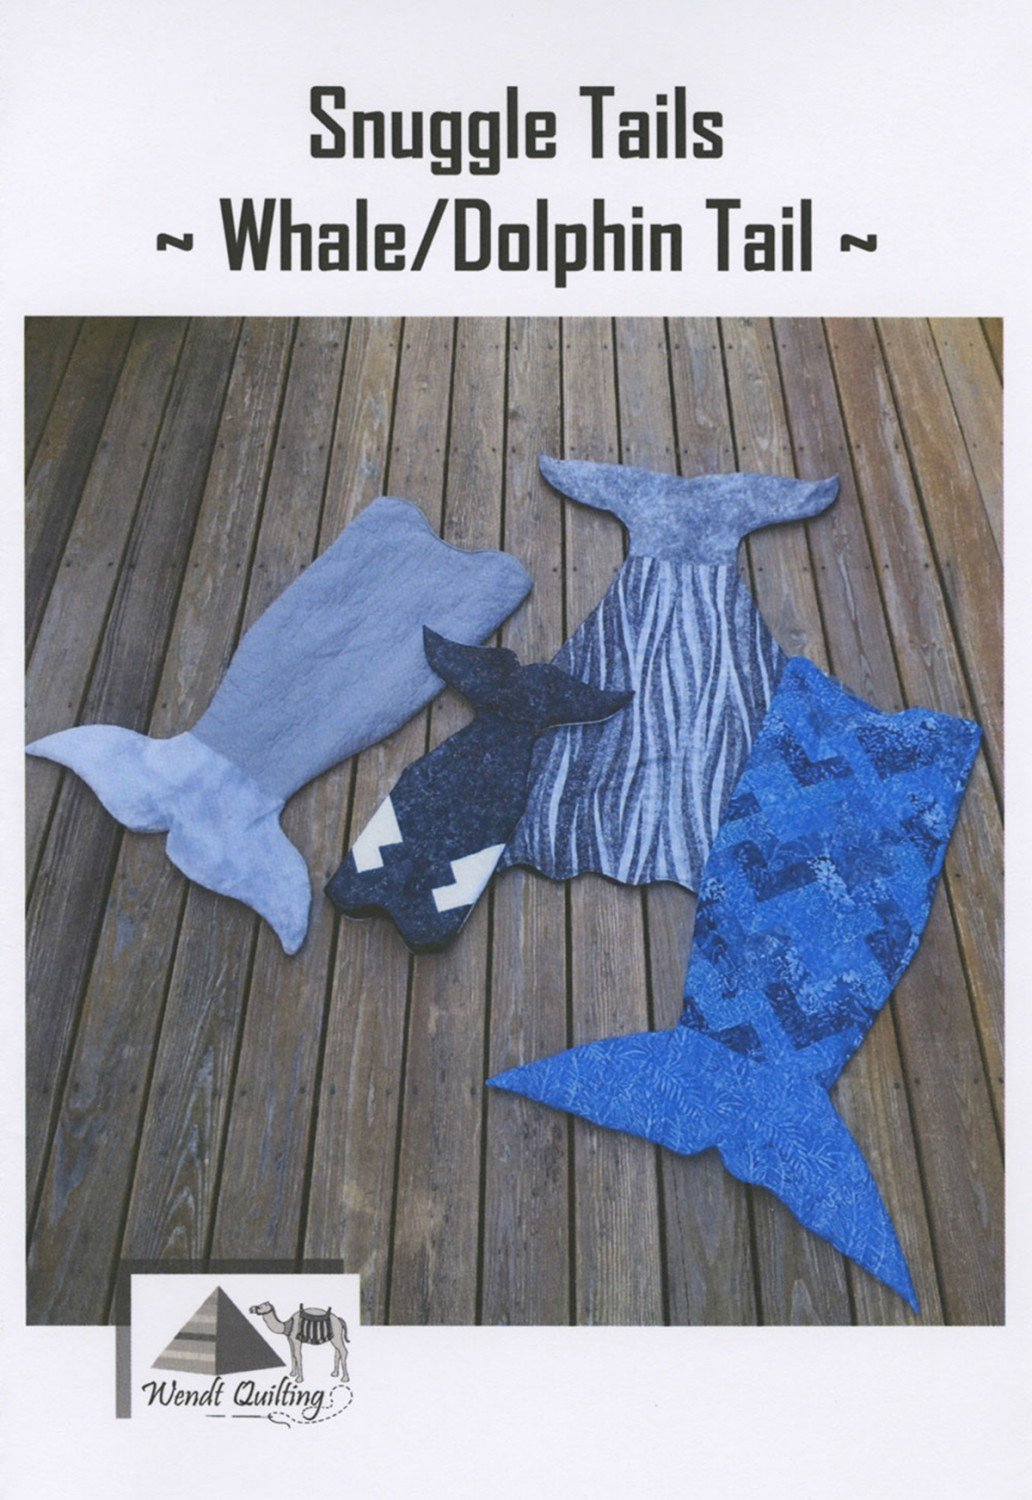 Snuggle Tails - Whale/Dolphin Tale Wendt